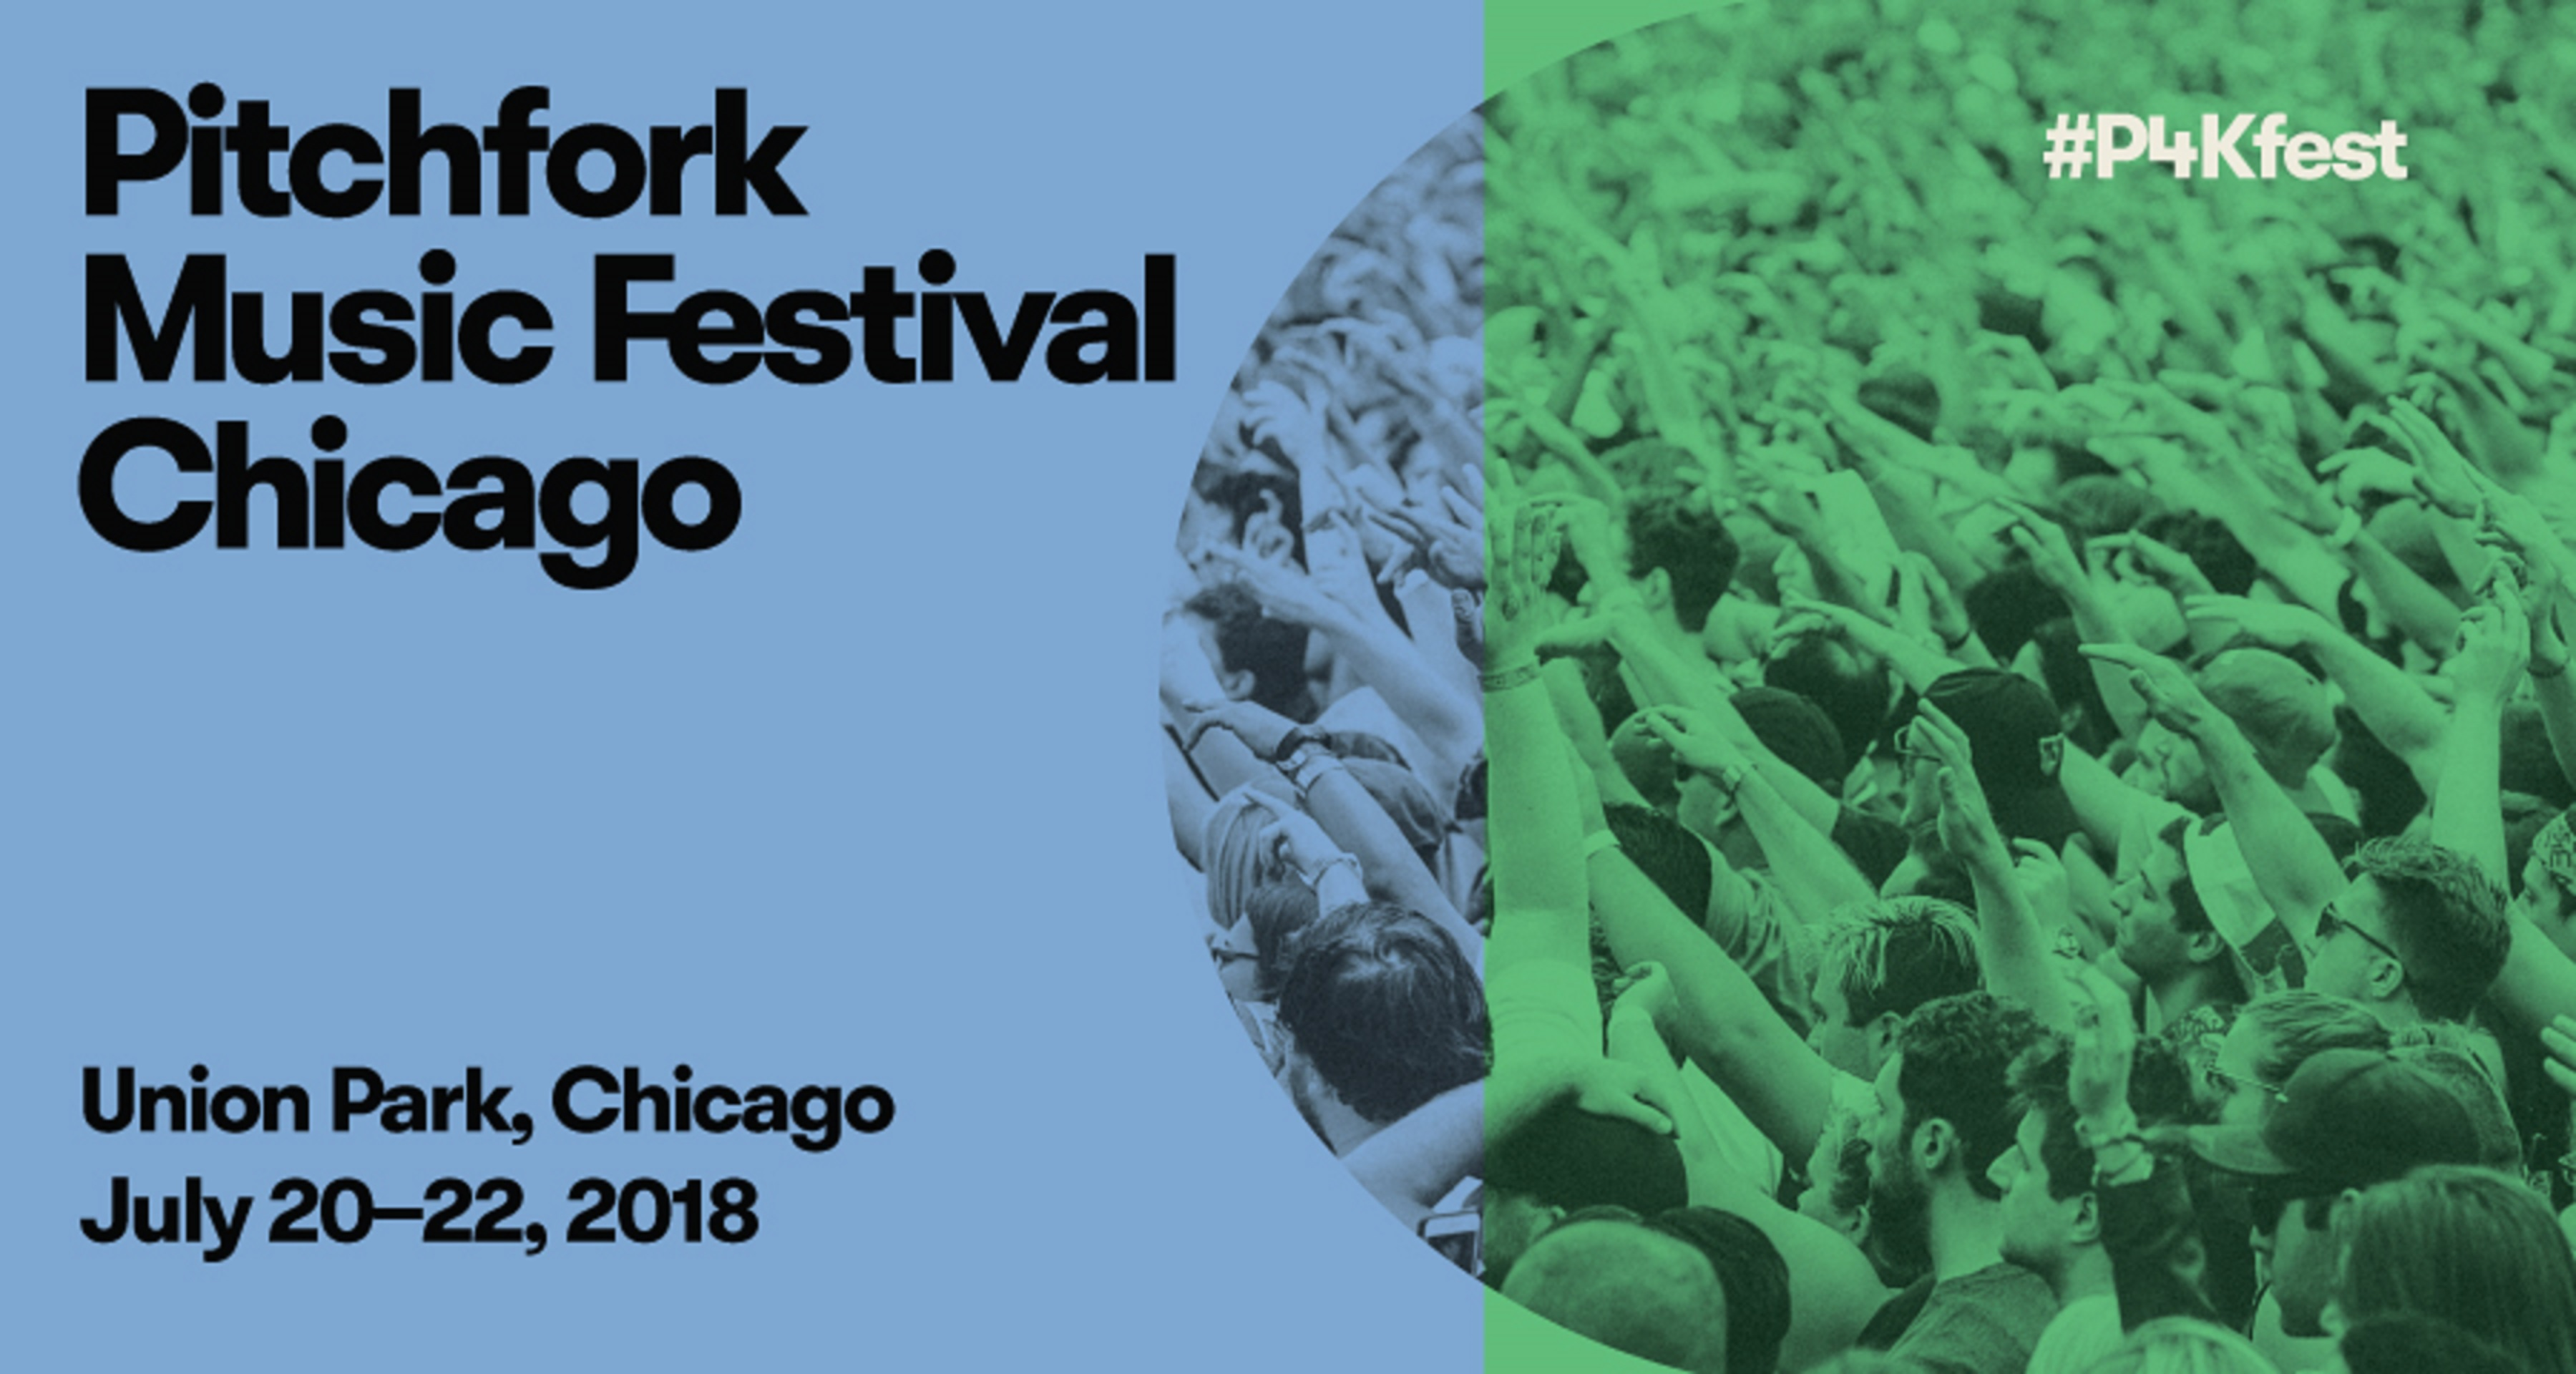 Pitchfork Music Festival 2018 Kicks off Today!